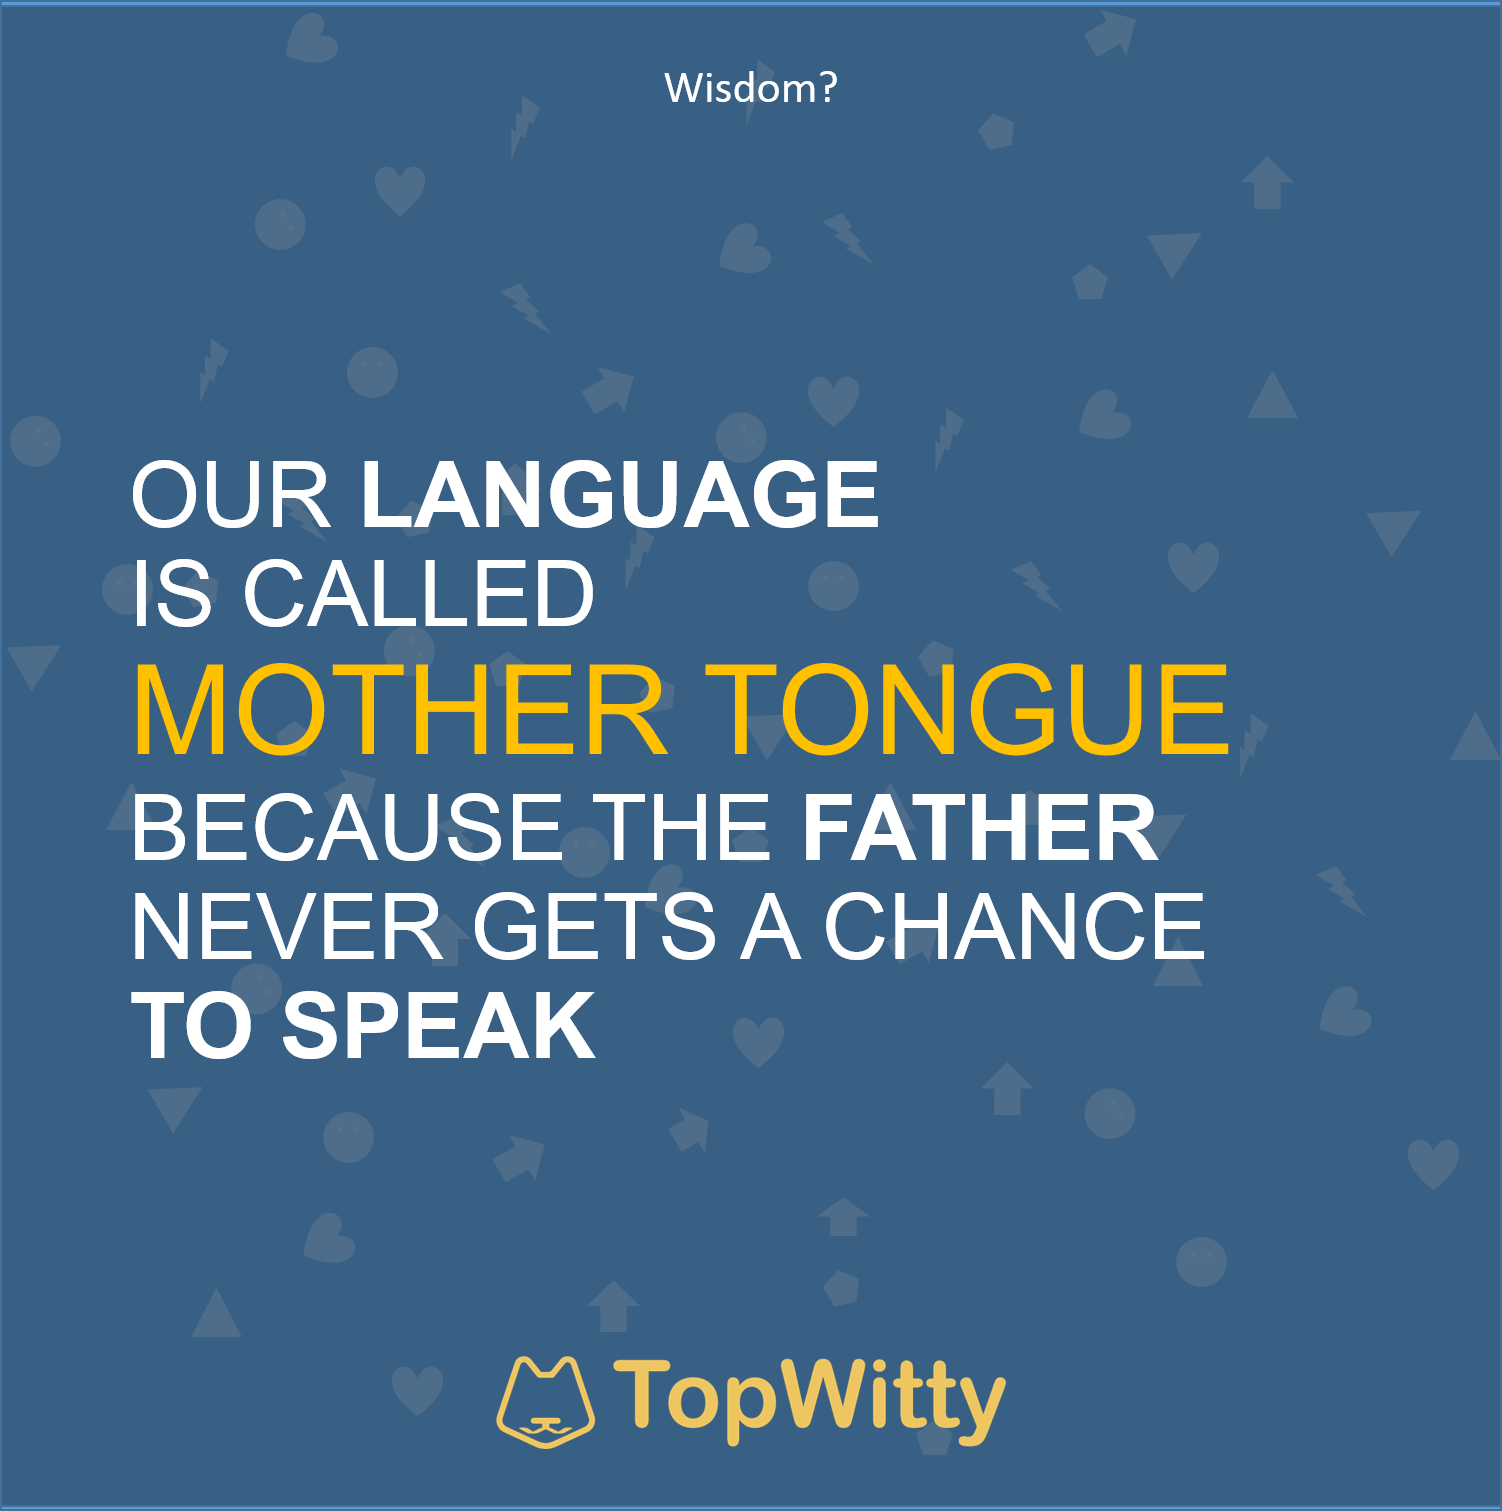 OUR LANGUAGE IS CALLED MOTHER TONGUE BECAUSE THE FATHER NEVER GETS A CHANCE TO SPEAK